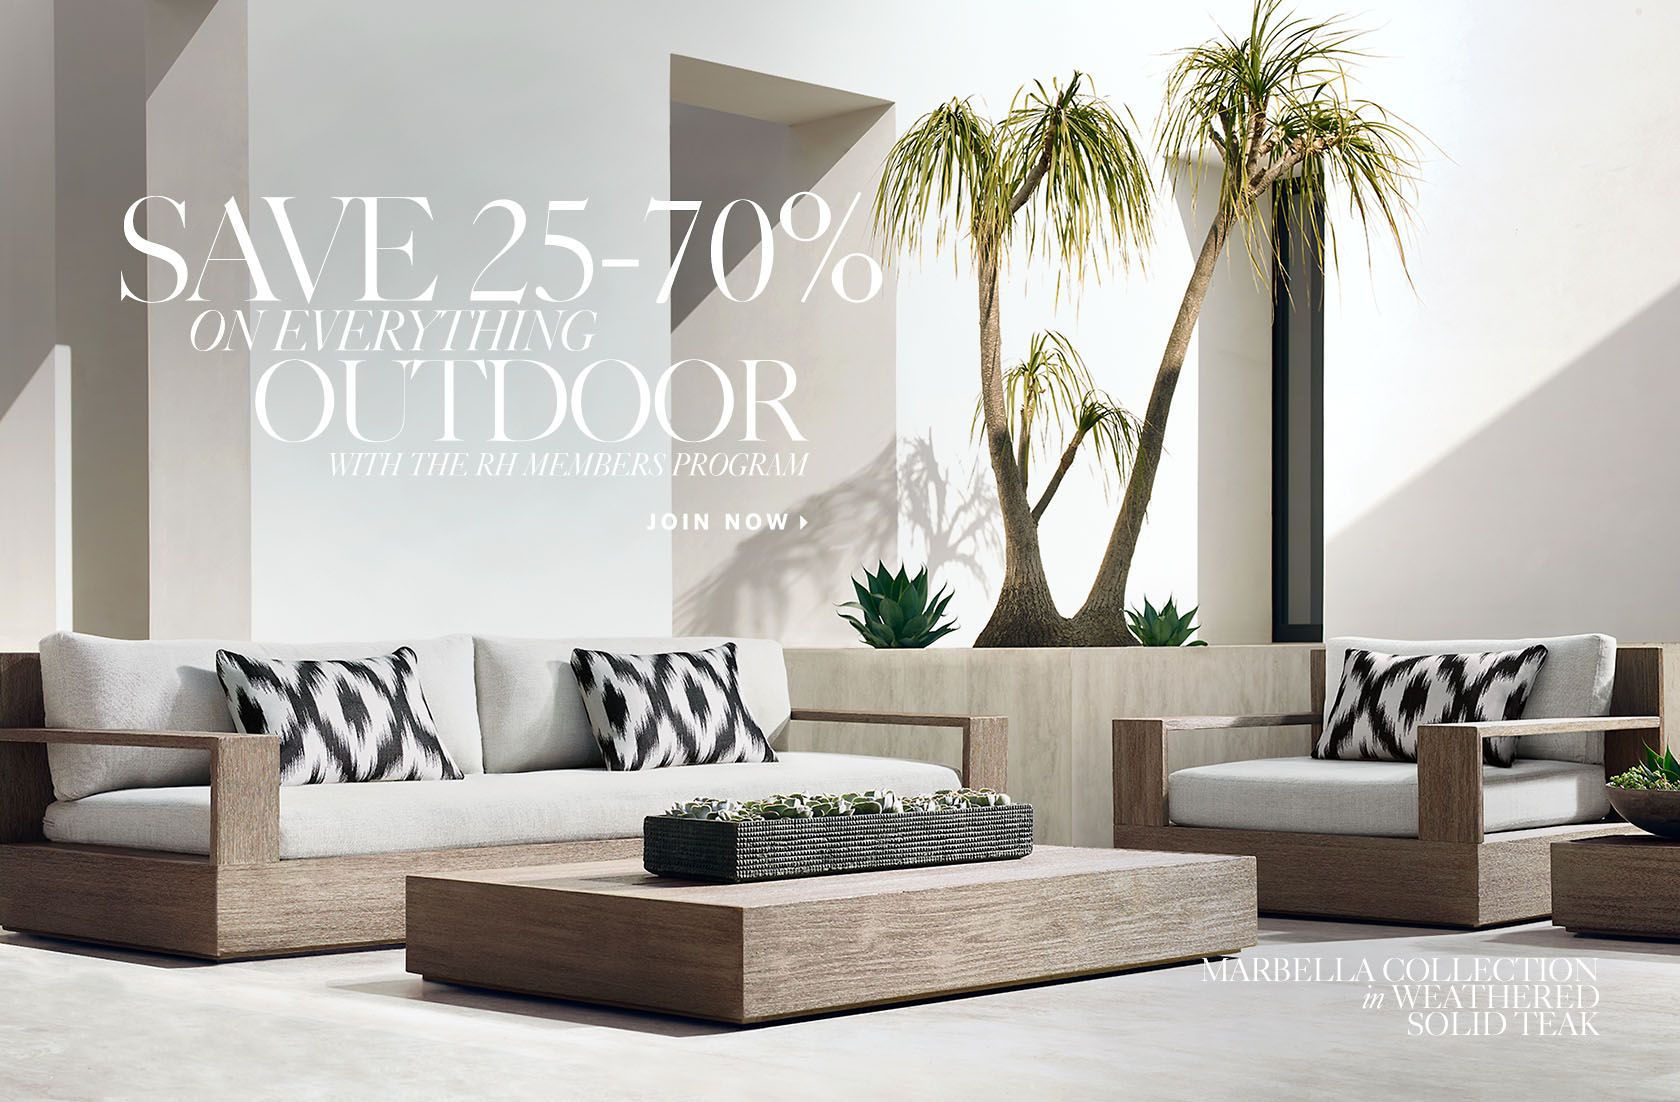 Introducing the 2016 Outdoor Collection